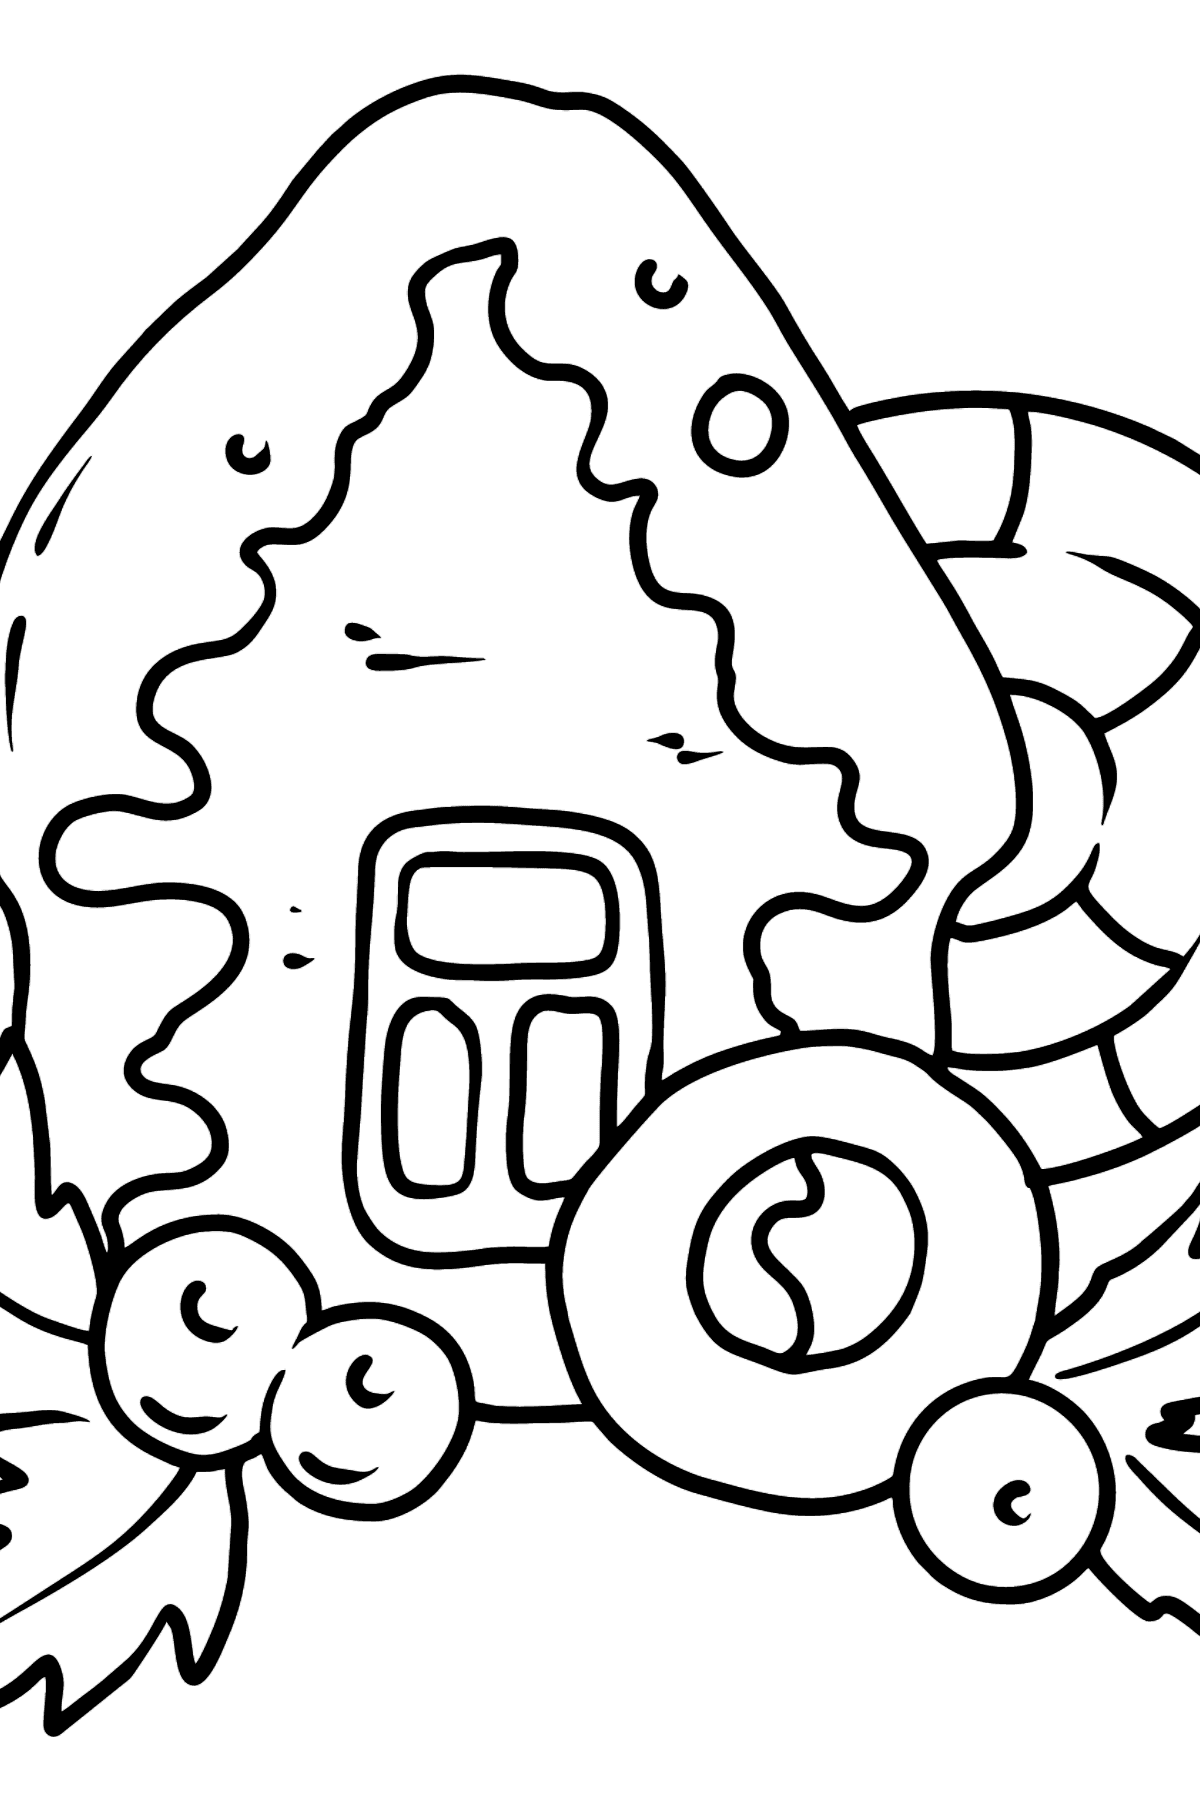 Christmas Gingerbread House coloring page - Coloring Pages for Kids